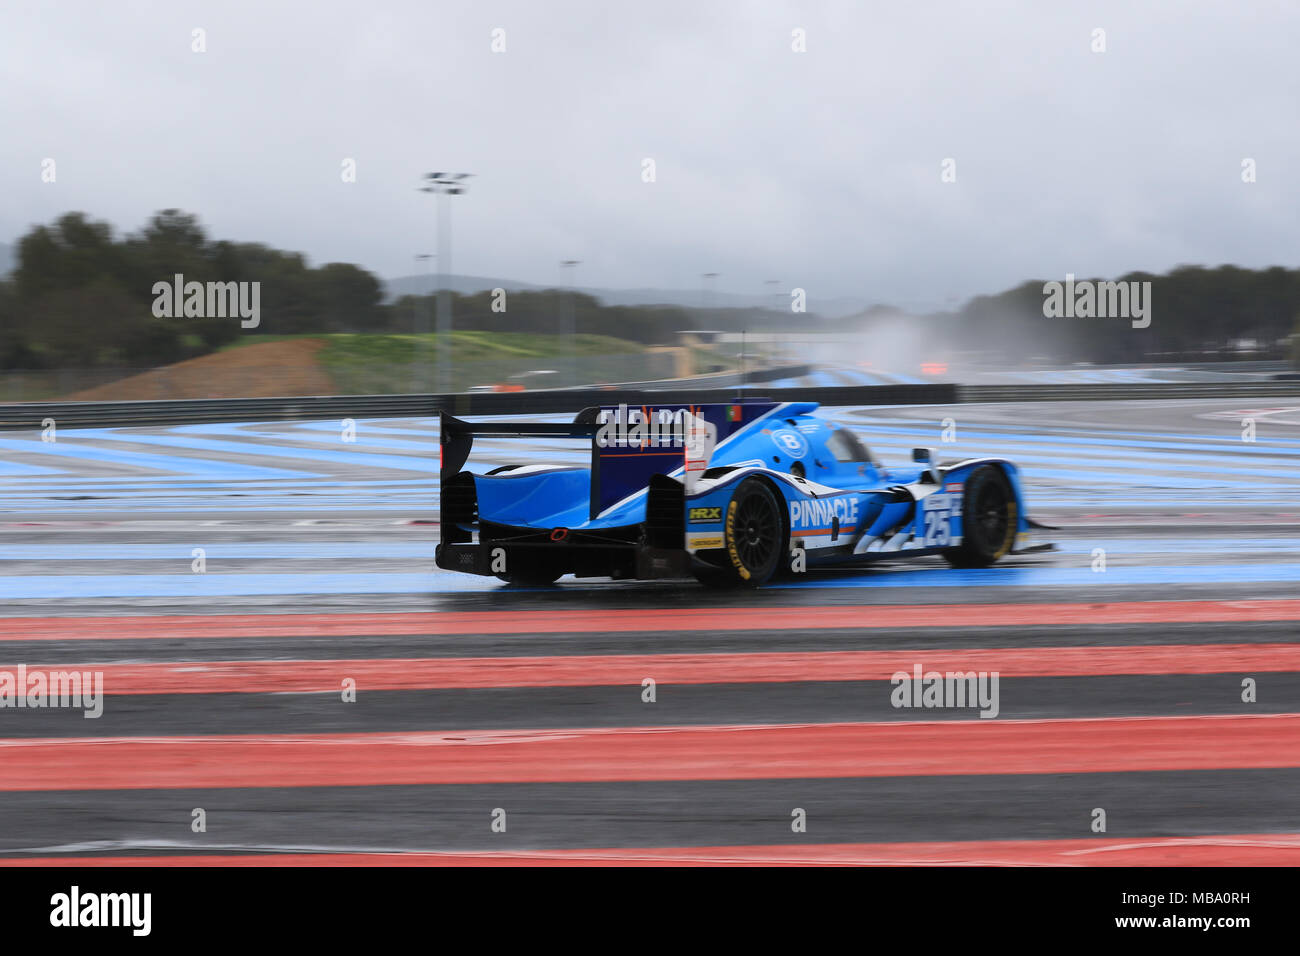 Le Castellet Circuit : Circuit paul ricard le castellet france. 9th apr 2018. teams